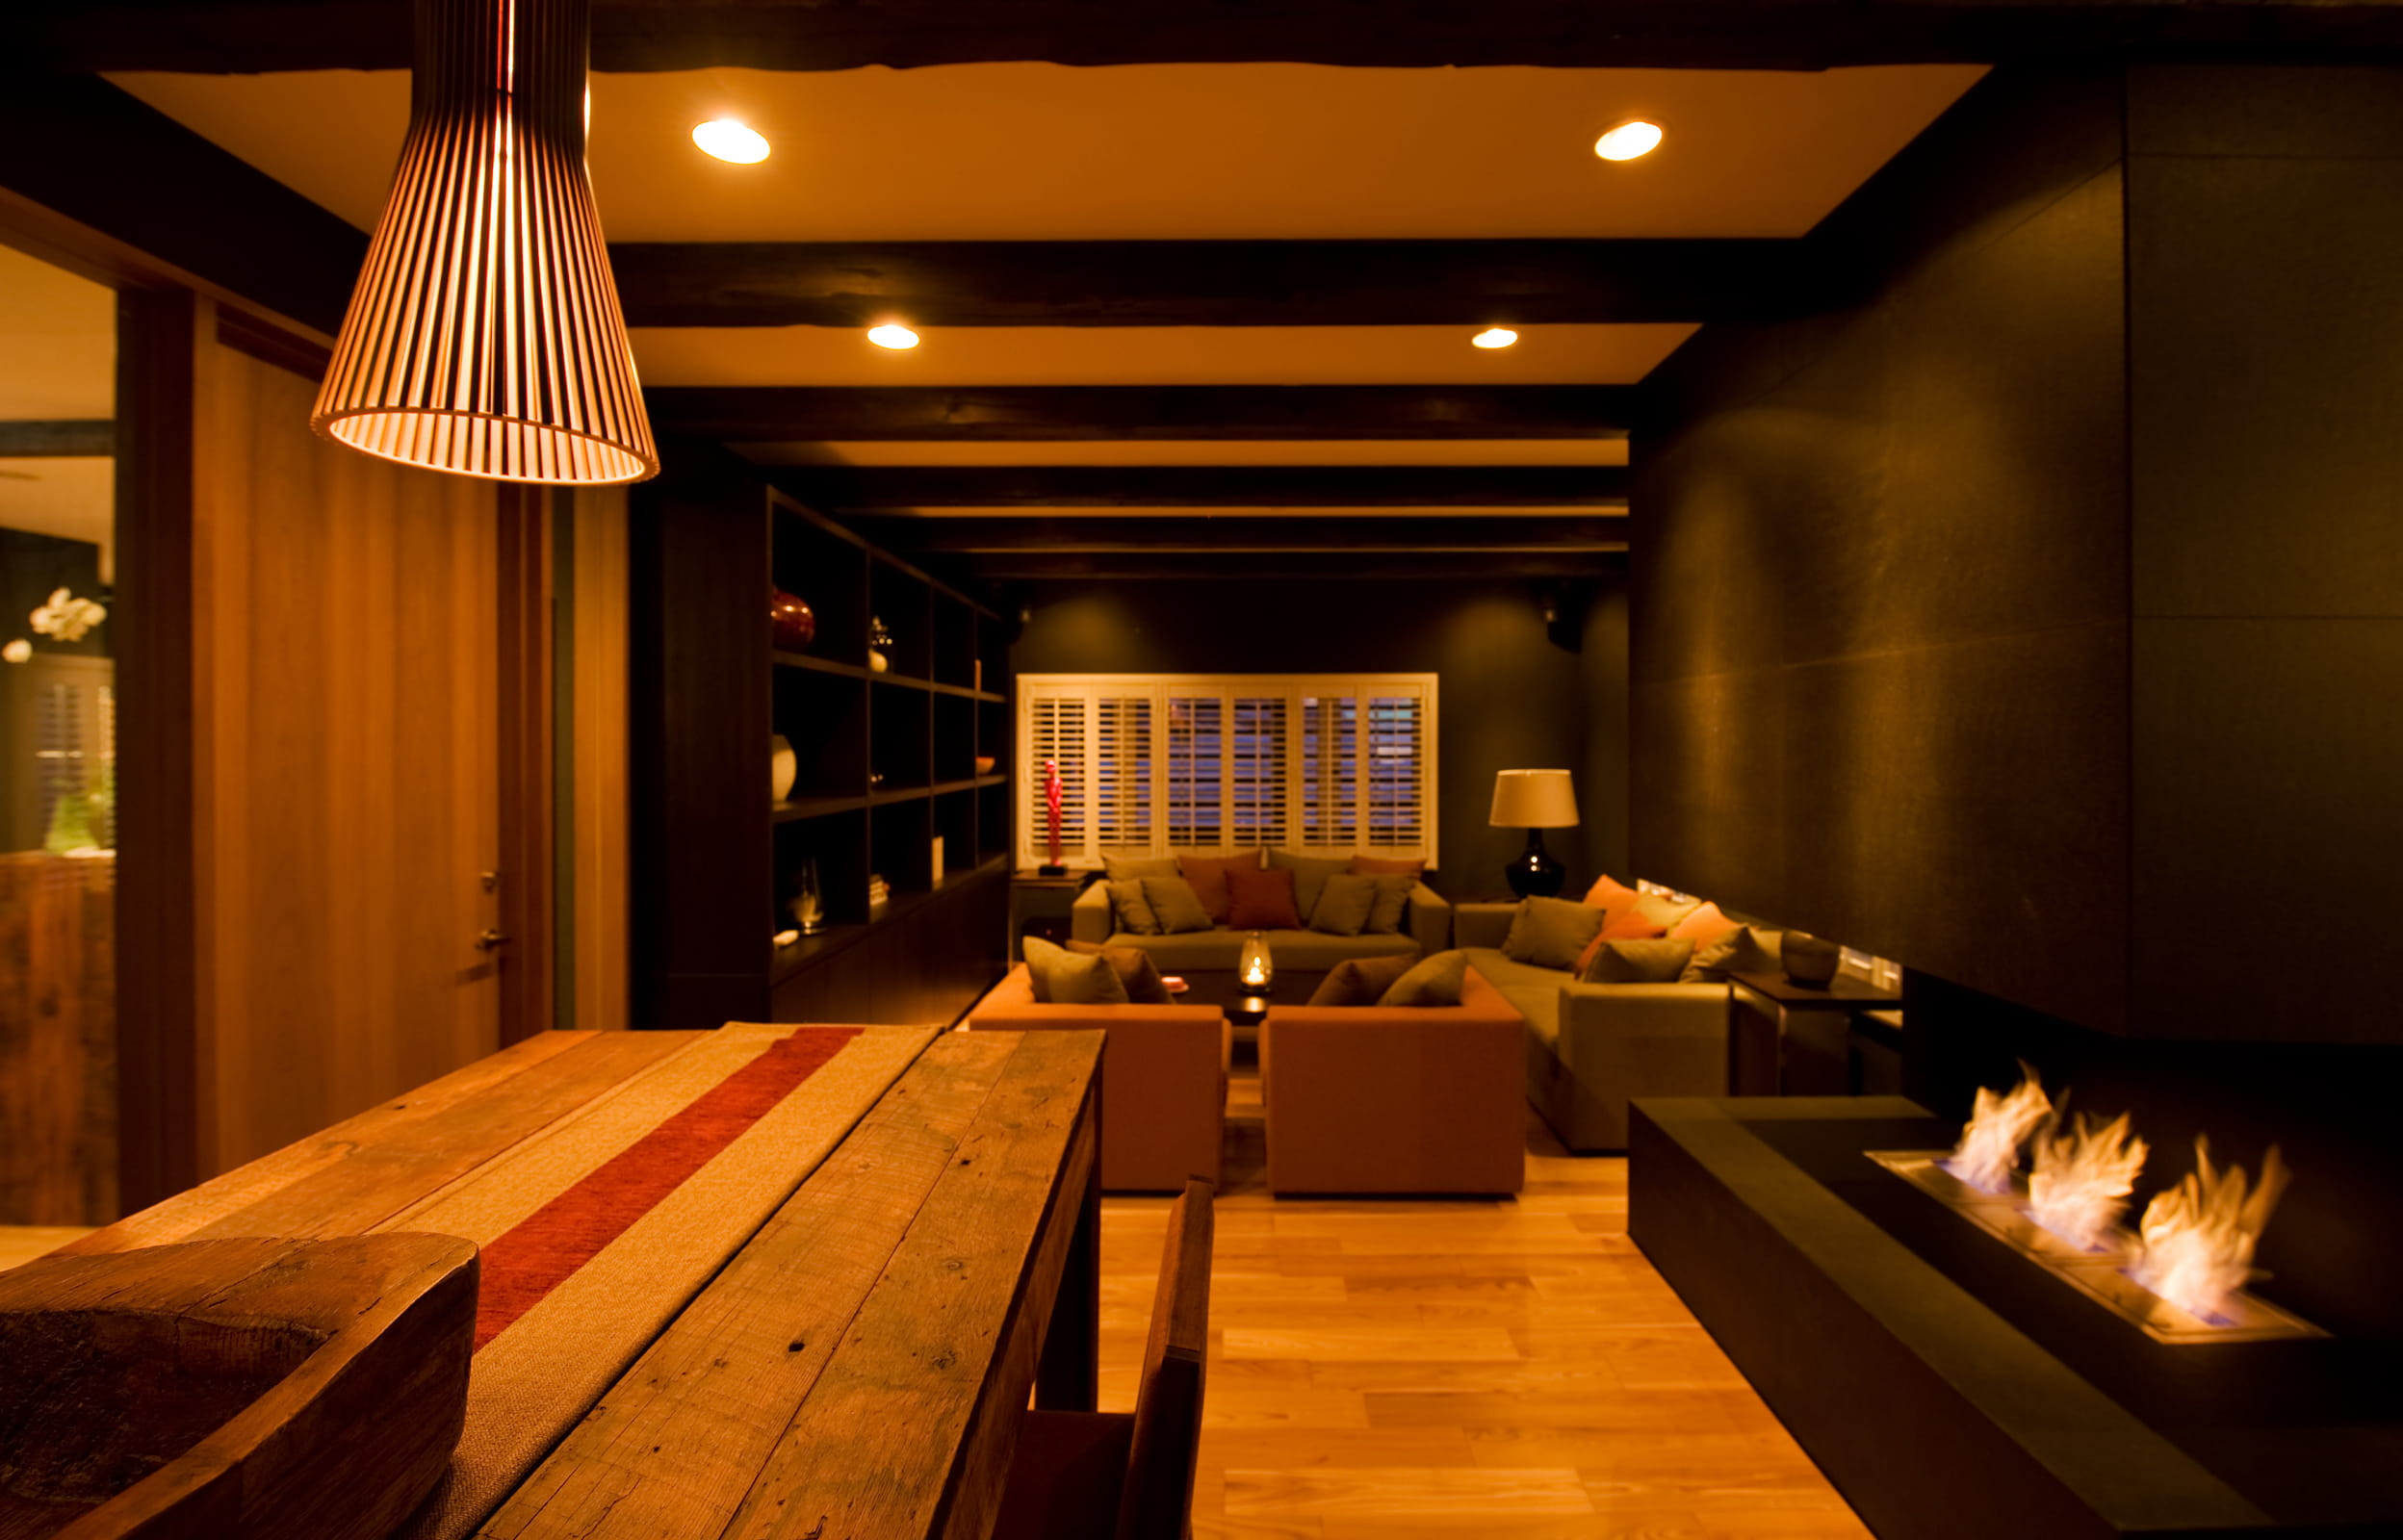 Kimamaya boutique hotel japonais au charme irr sistible for Design boutique hotels colroy la roche